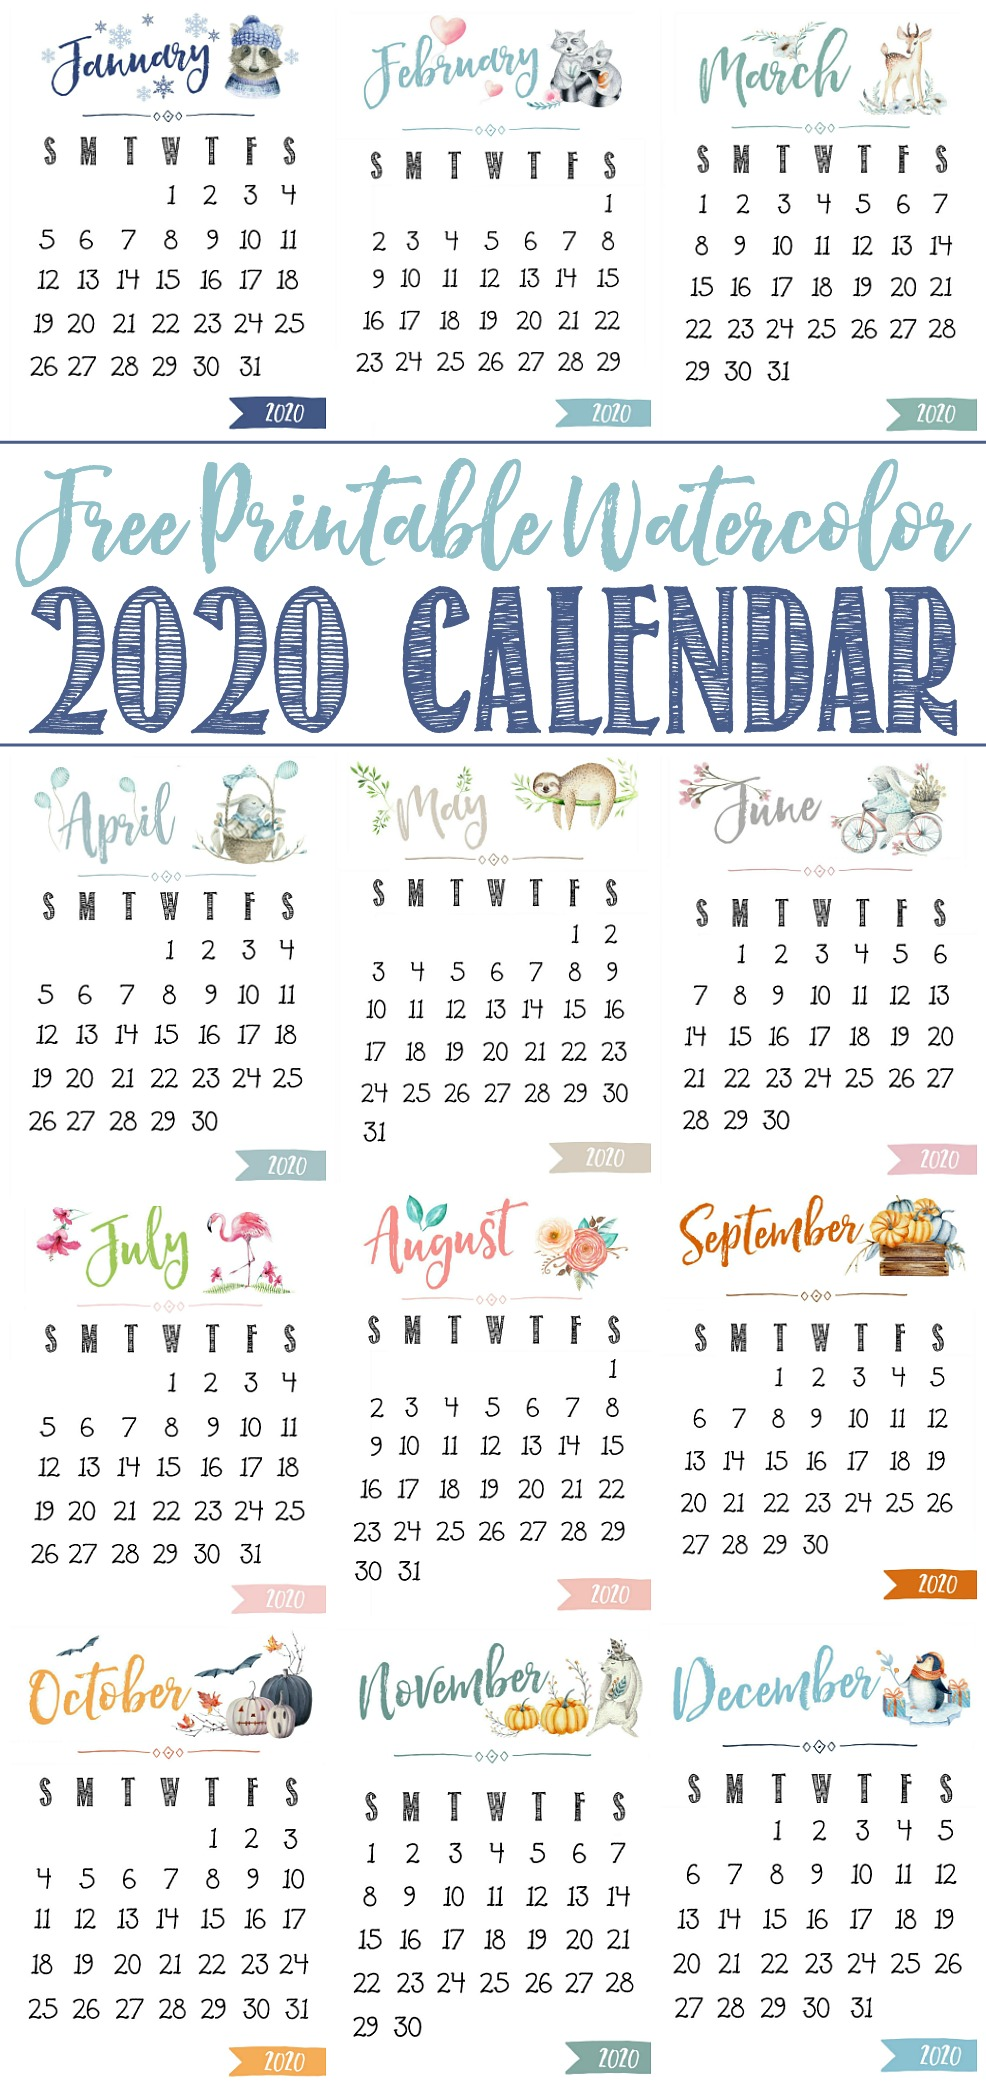 2020 free printable calendar with cute watercolor design.